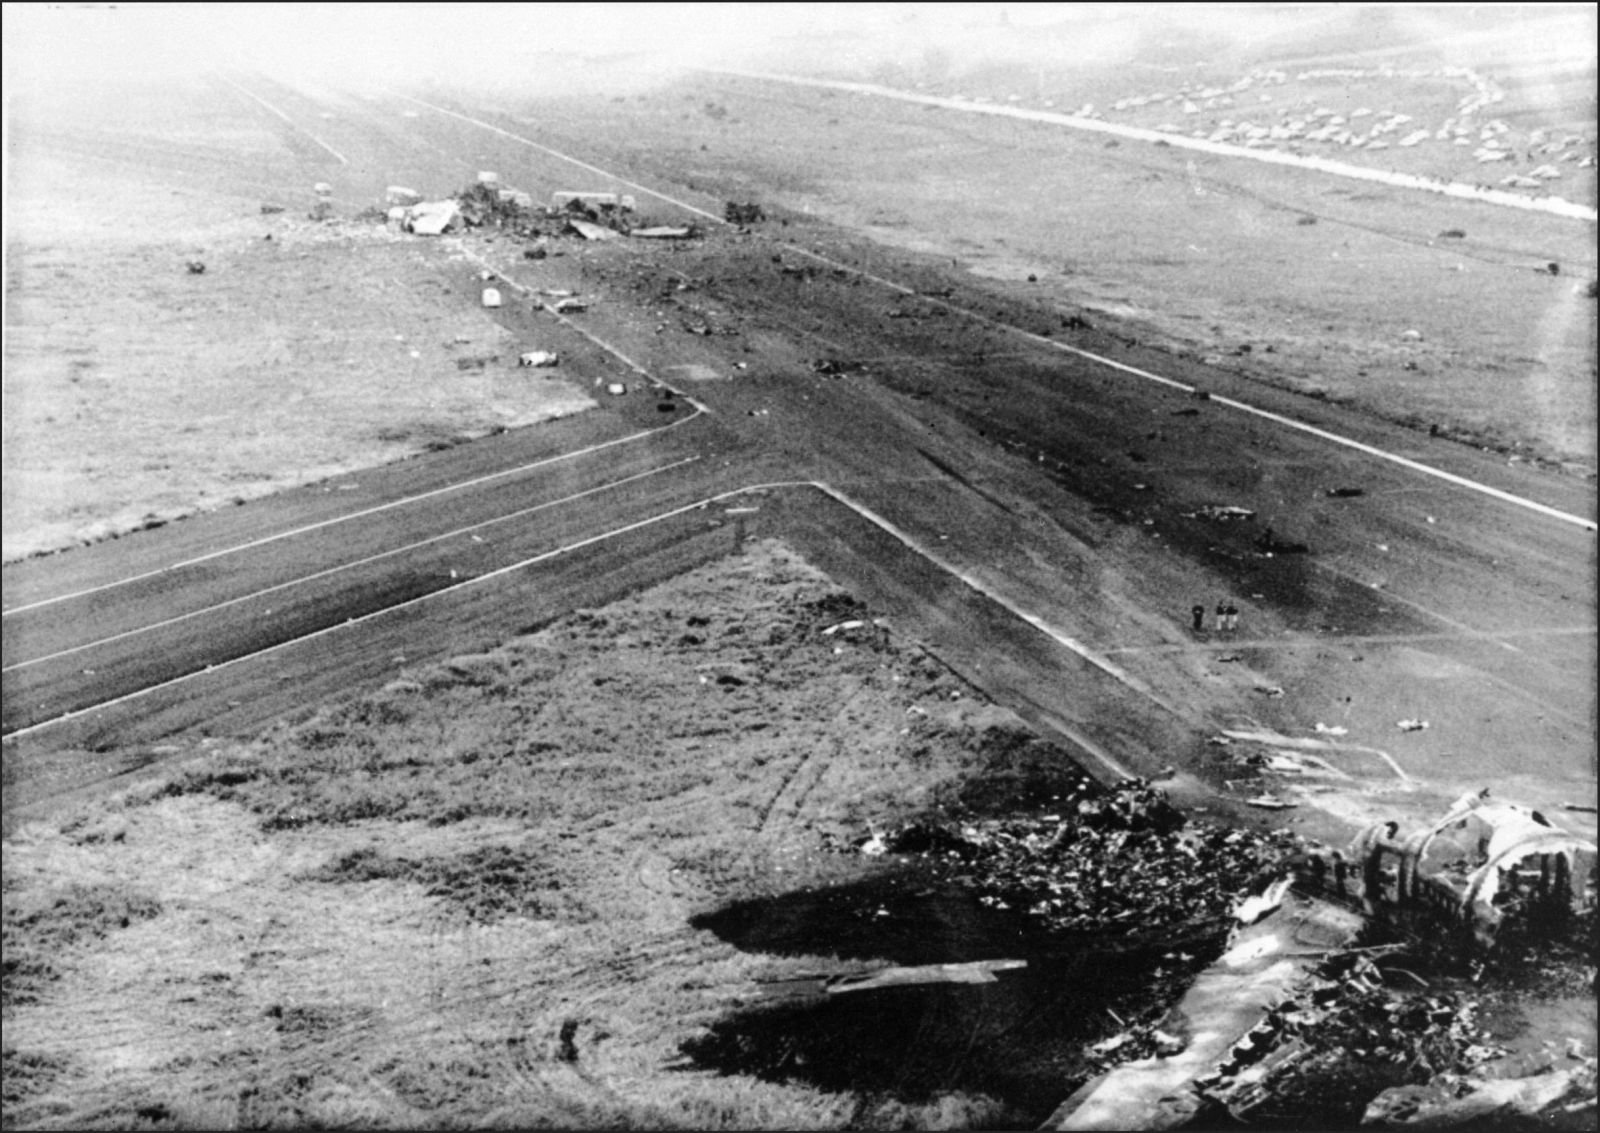 PHOTO: EAST NEWS/AFP Aerial view taken 28 March 1977 of a KLM Jumbo Jet and a Boeing 747 remains that collided 27 March above Santa Cruz De Tenerife airport killing 580 passengers and crew members, many people beeing injured.